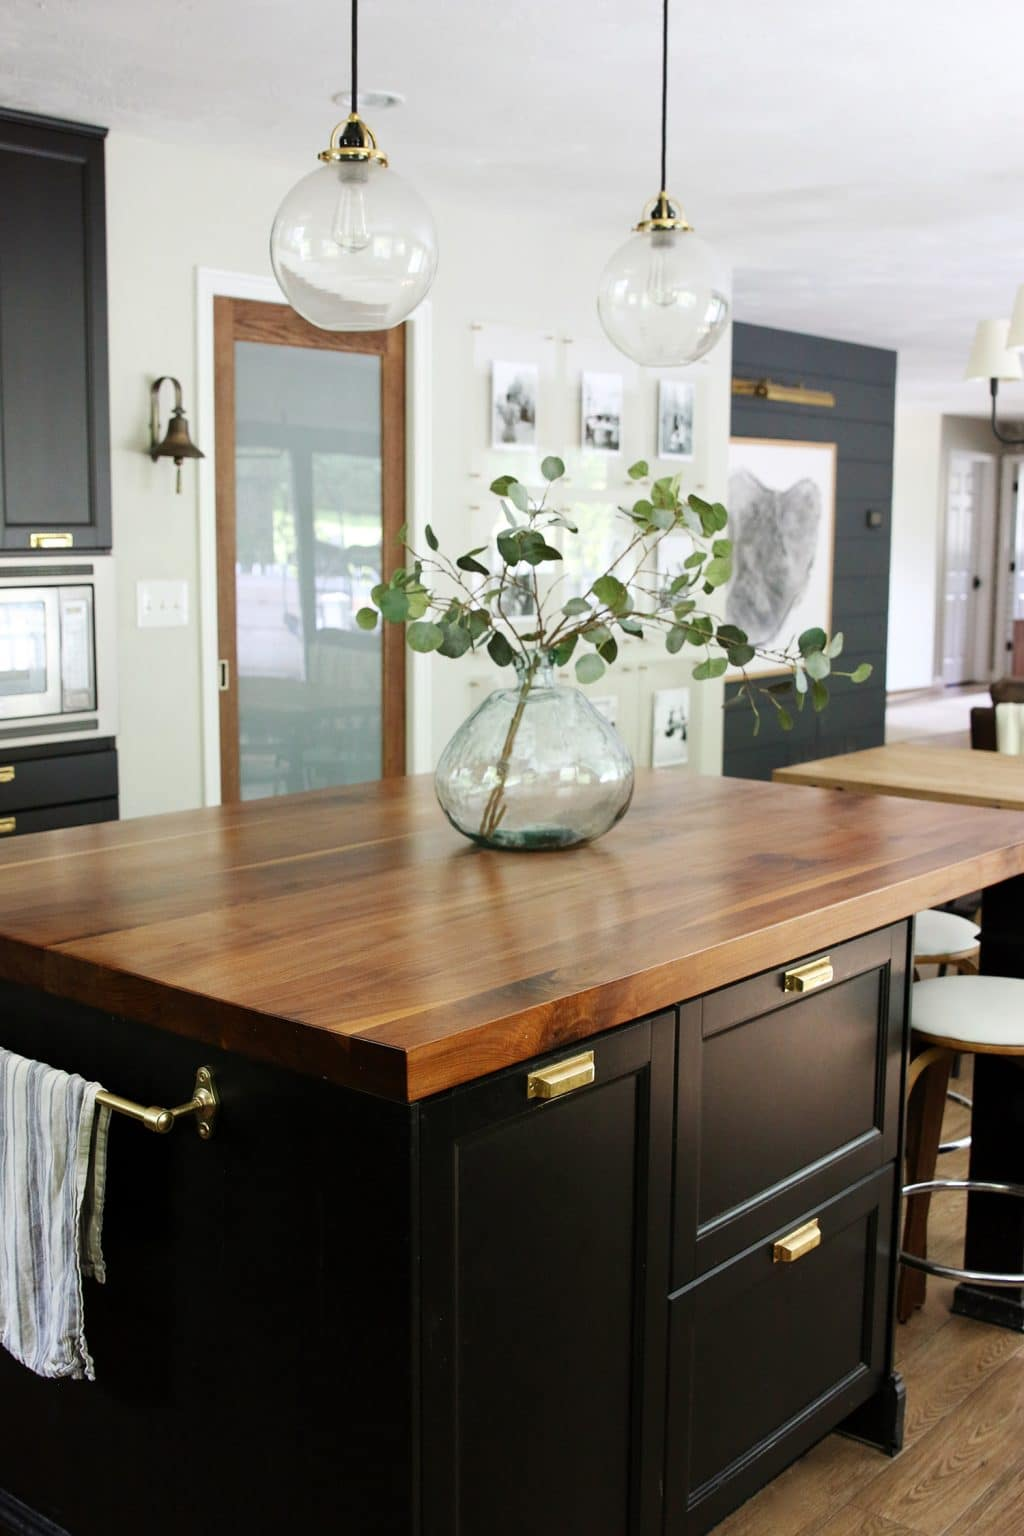 Butcher Block Style Kitchen Counter : A Big Sale on Butcher Block Countertops! (You can use them everywhere!) - Chris Loves Julia